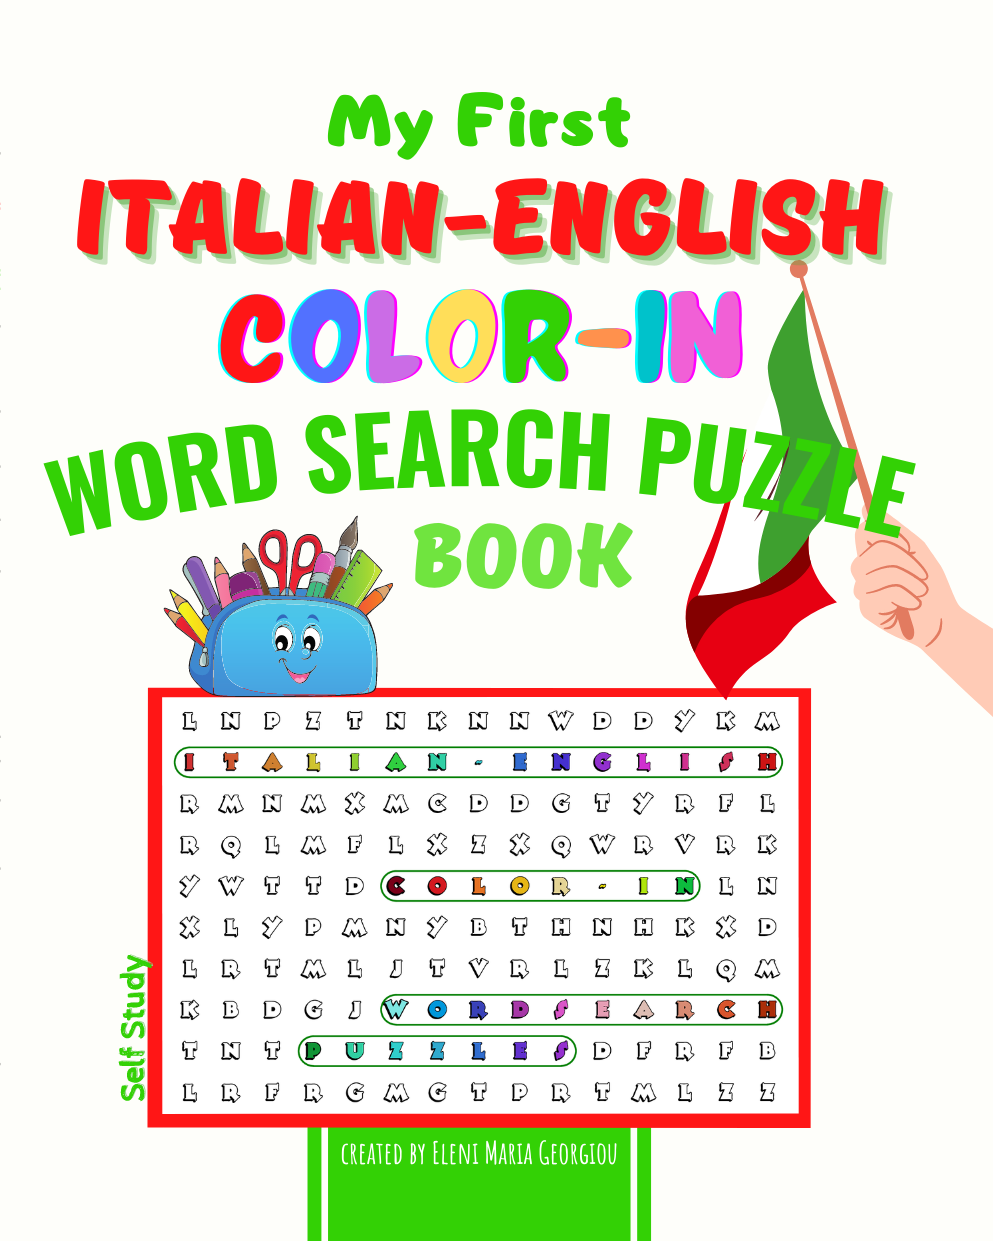 My First Italian-English Color-In Word Search Puzzle Book